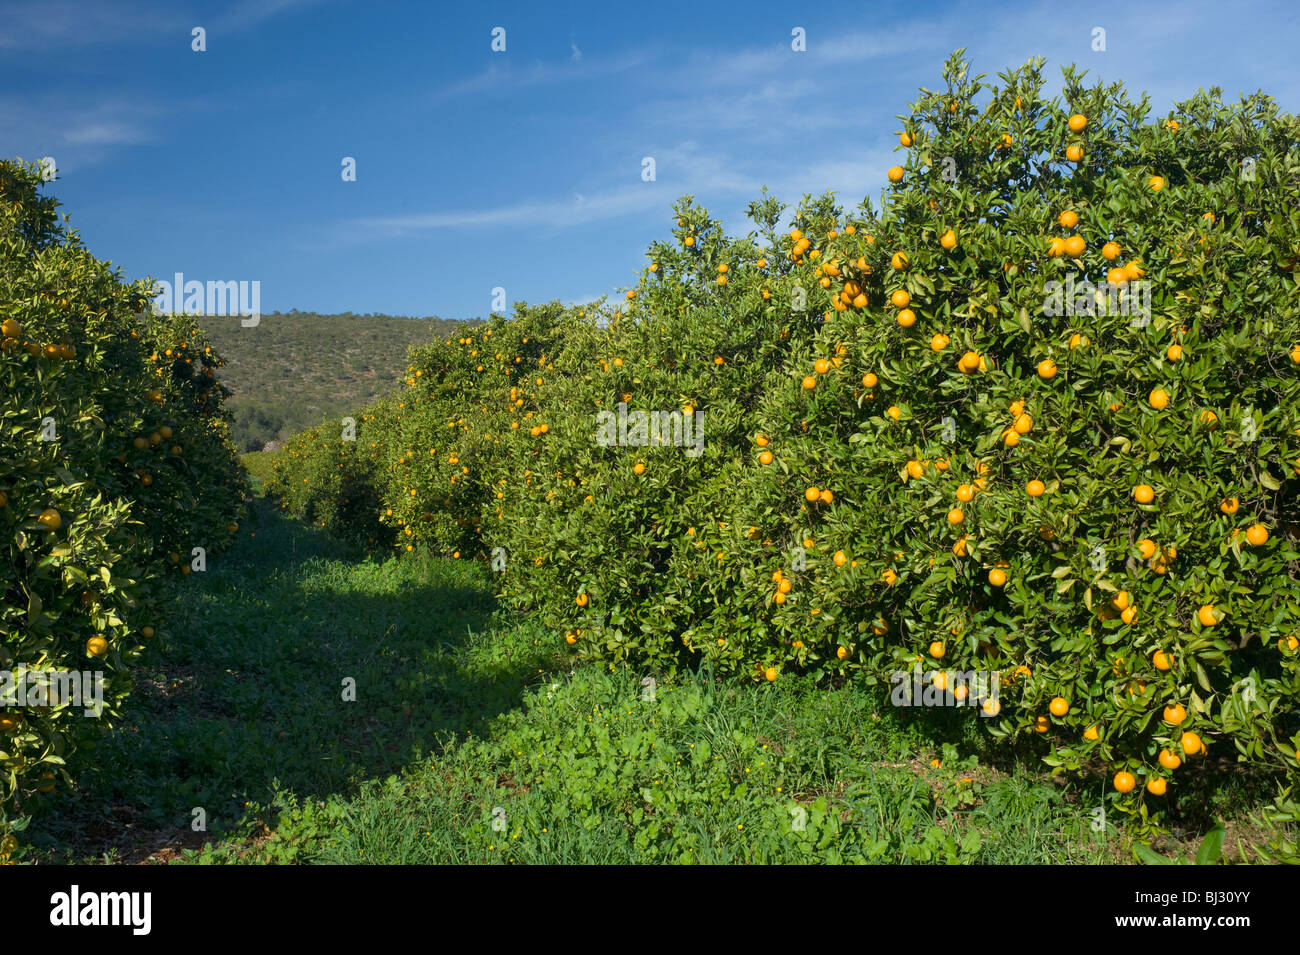 Portugal, the Algarve, an orange orchard inland - Stock Image